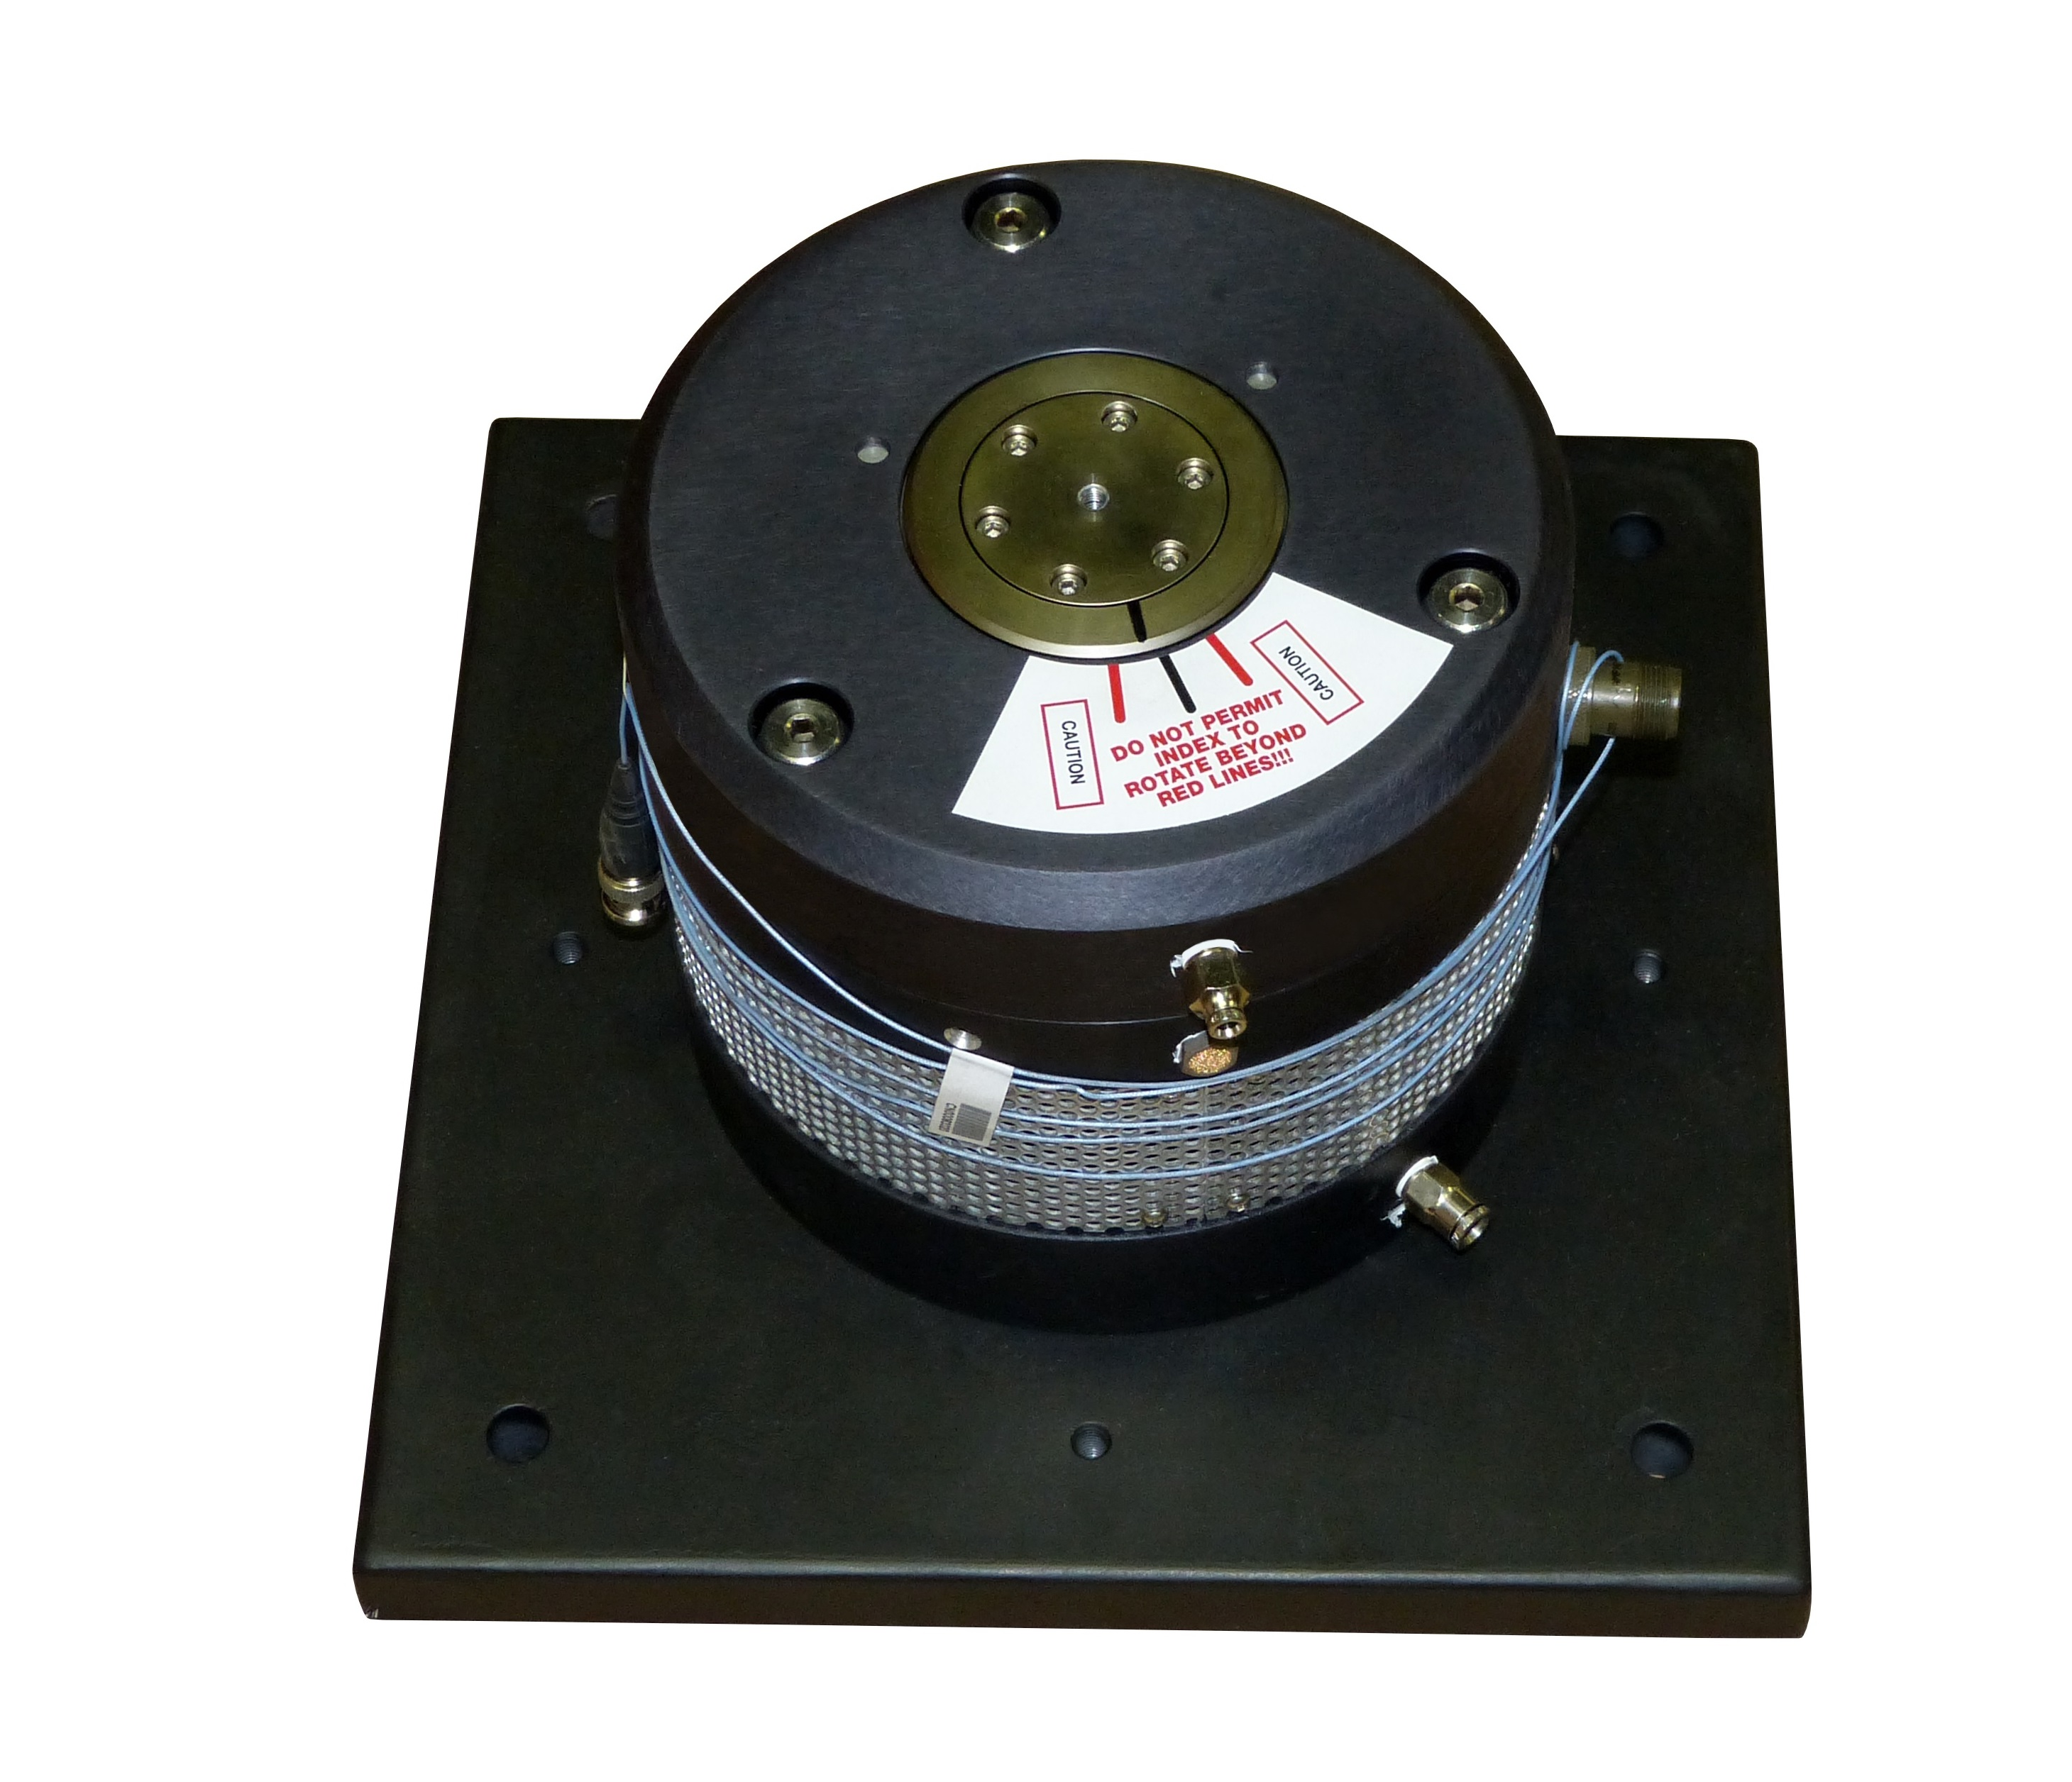 High-Frequency Air Bearing Vibration Exciter Intended for High-Volume Accelerometer Calibrations and Sensor Quality Assurance Testing